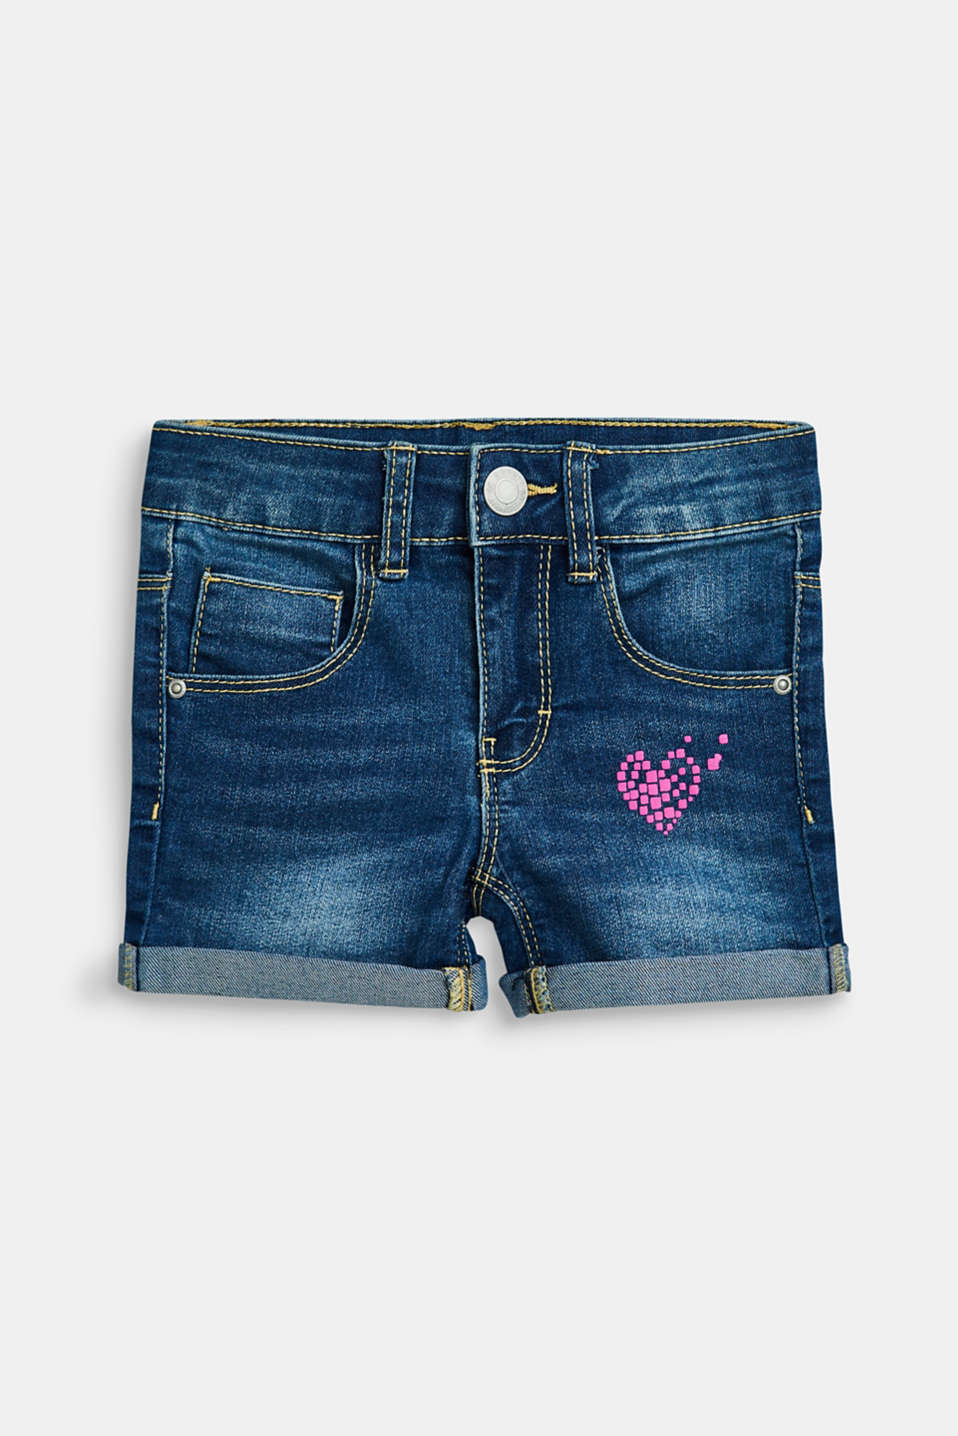 Esprit - Denim shorts with a heart print and an adjustable waistband